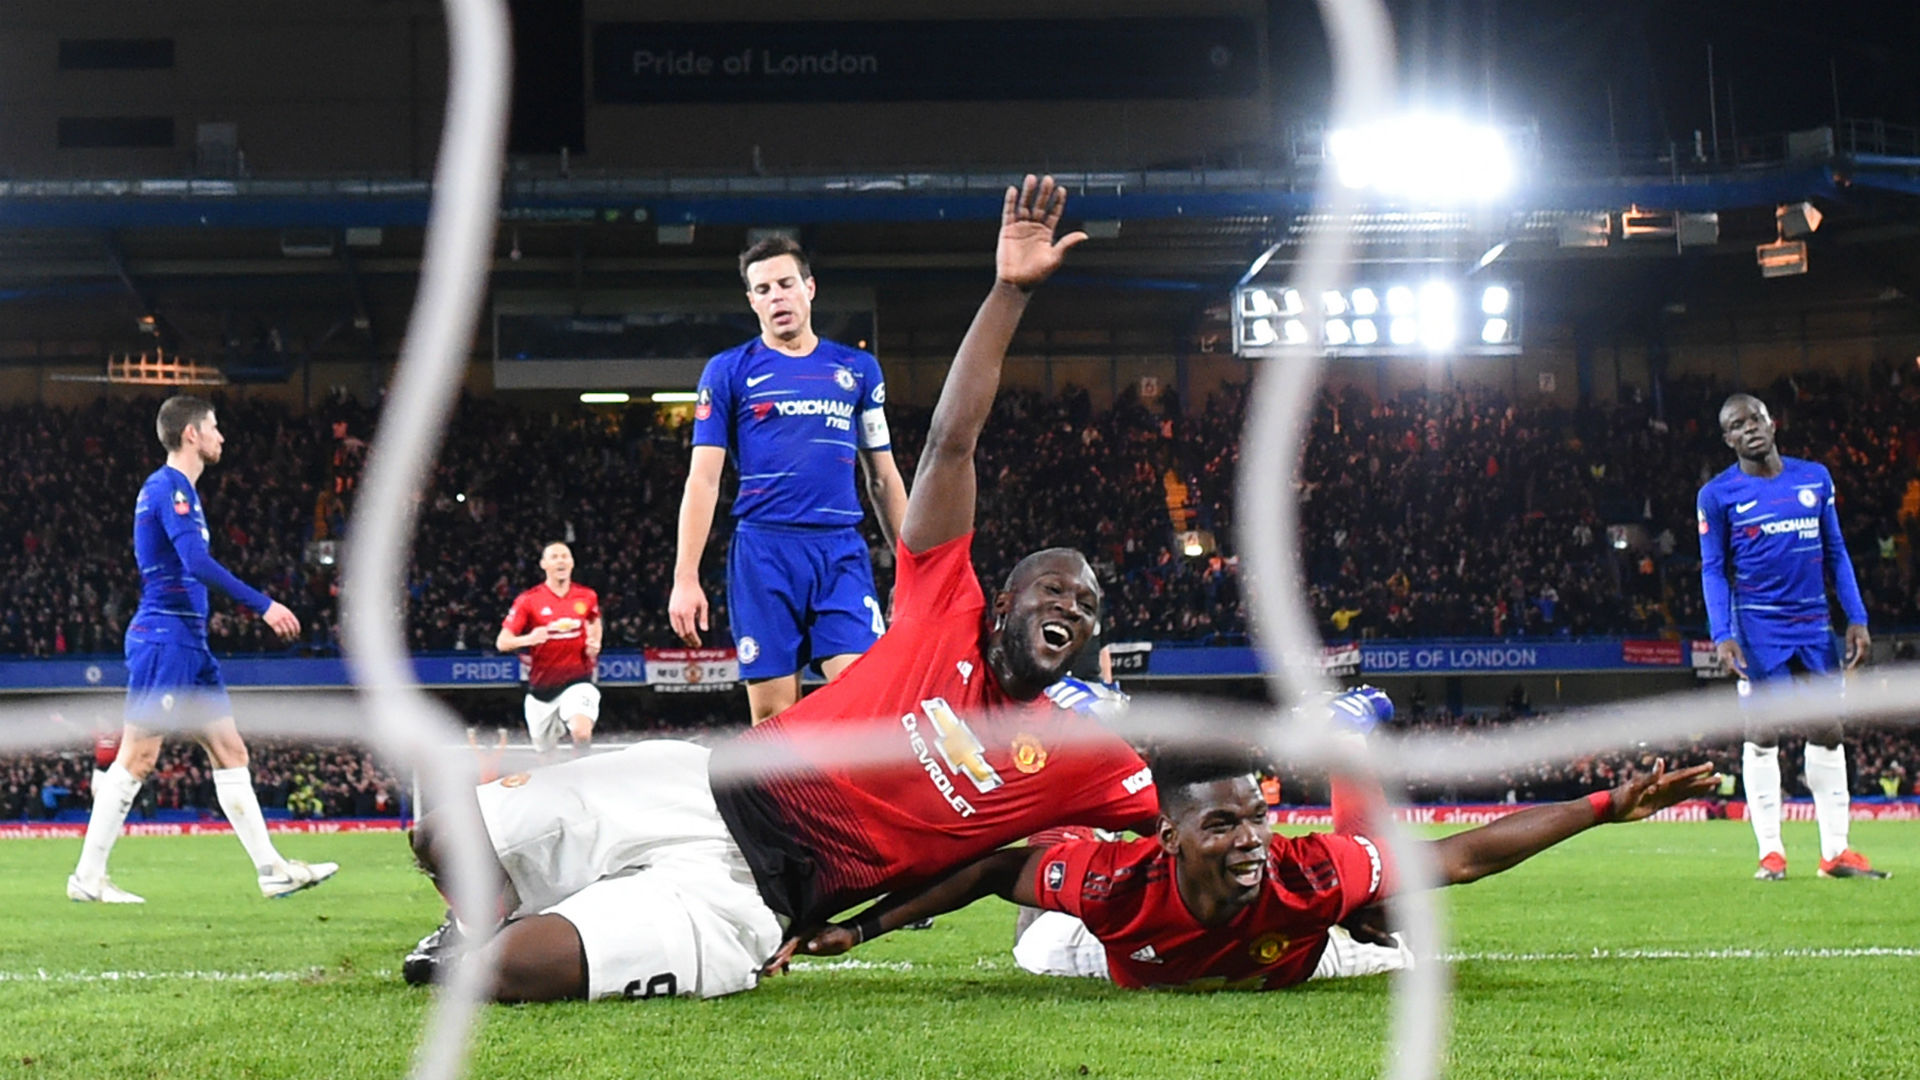 Chelsea beat Manchester United 3-1 on Sunday to book their place in an all-London FA Cup final. But they were helped by two glaring errors from goalkeeper David de Gea and an own goal by Harry Maguire. Chelsea, who face rivals Arsenal in the Aug. 1 showpiece, had lost to Manchester United three times this […]